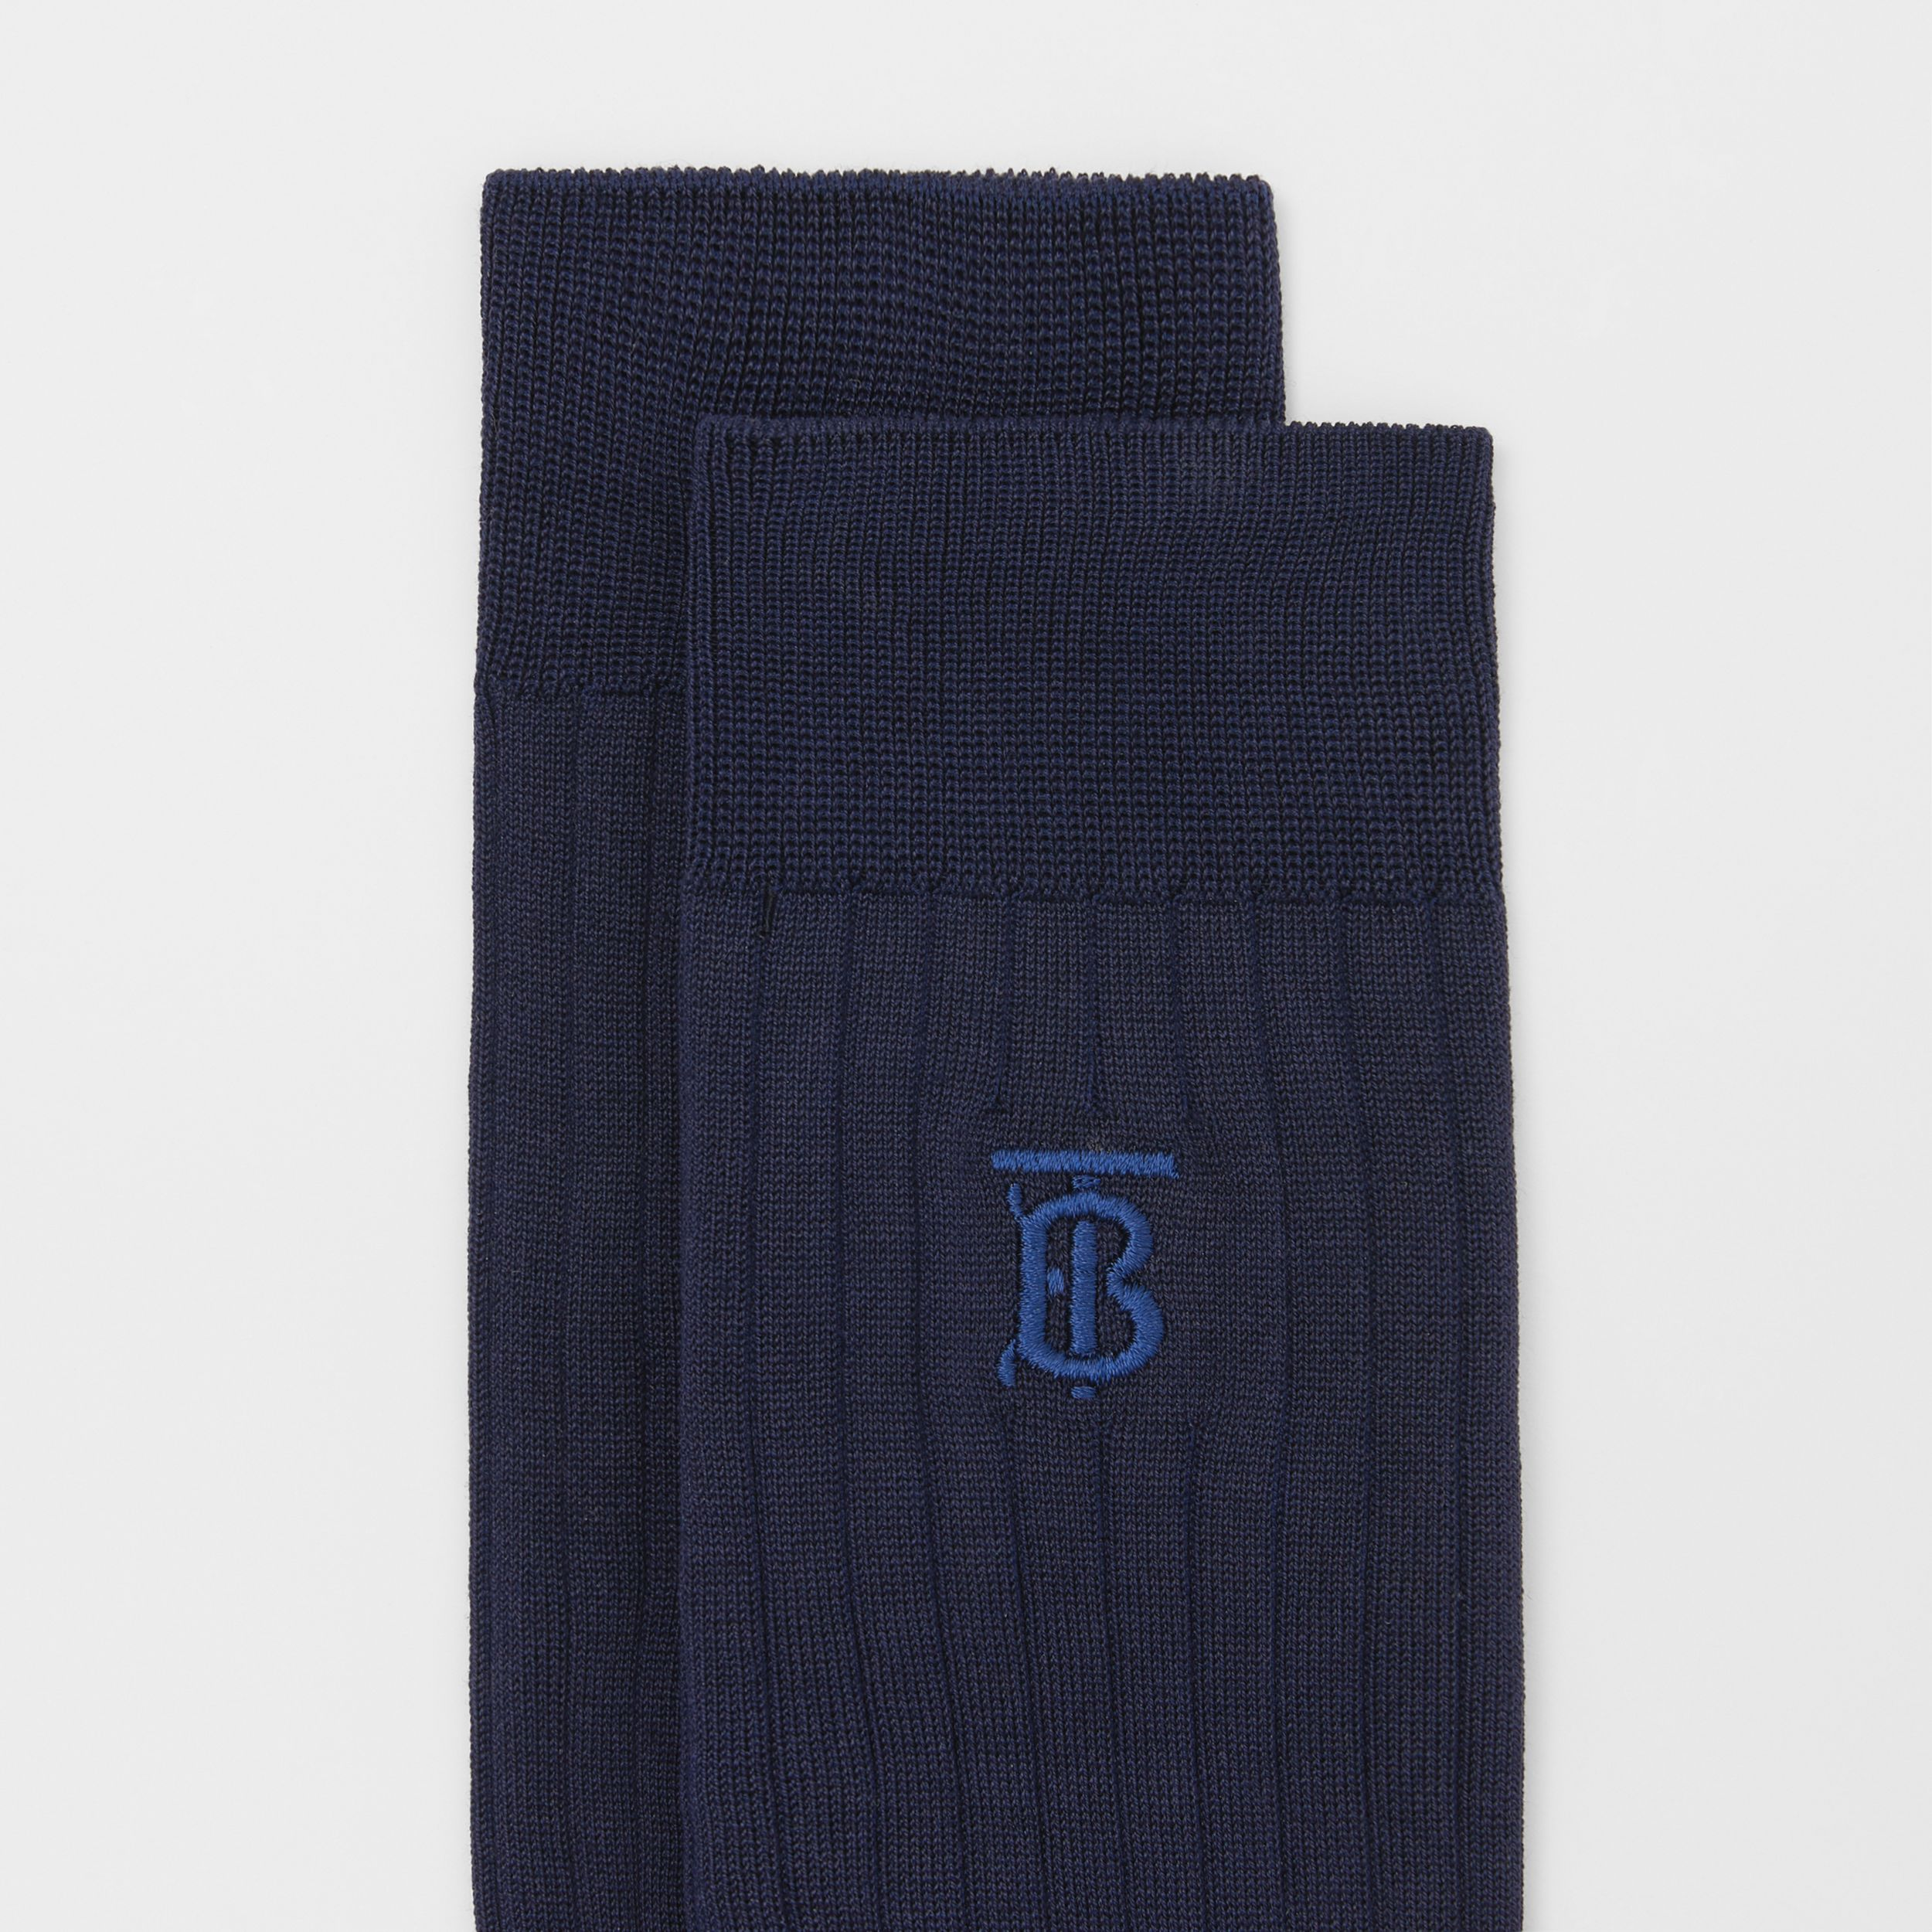 Monogram Motif Cotton Blend Socks in Navy | Burberry Australia - 2